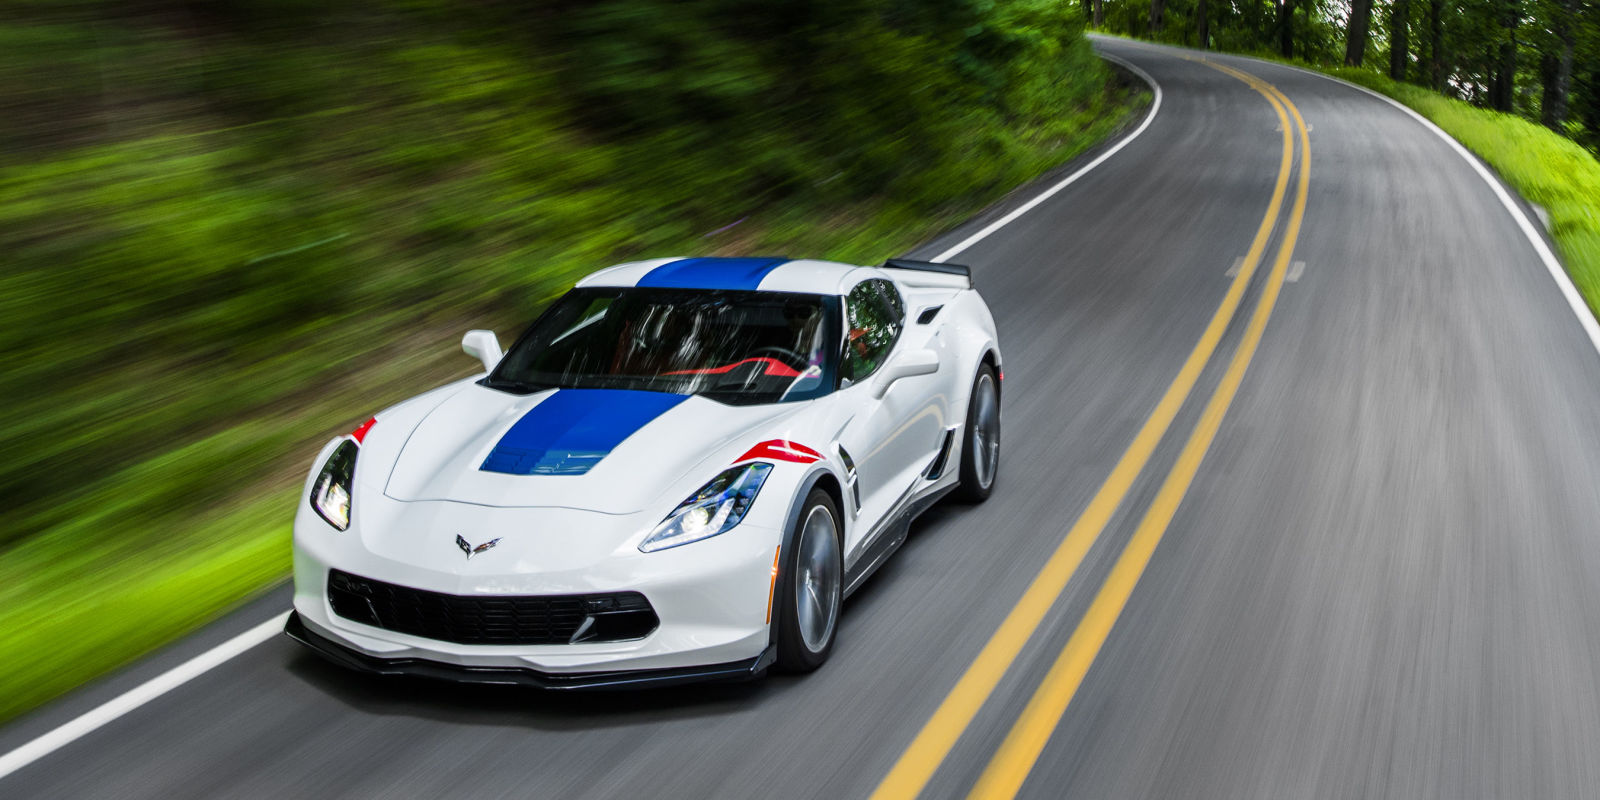 2017 corvette grand sport review new corvette first drive. Black Bedroom Furniture Sets. Home Design Ideas